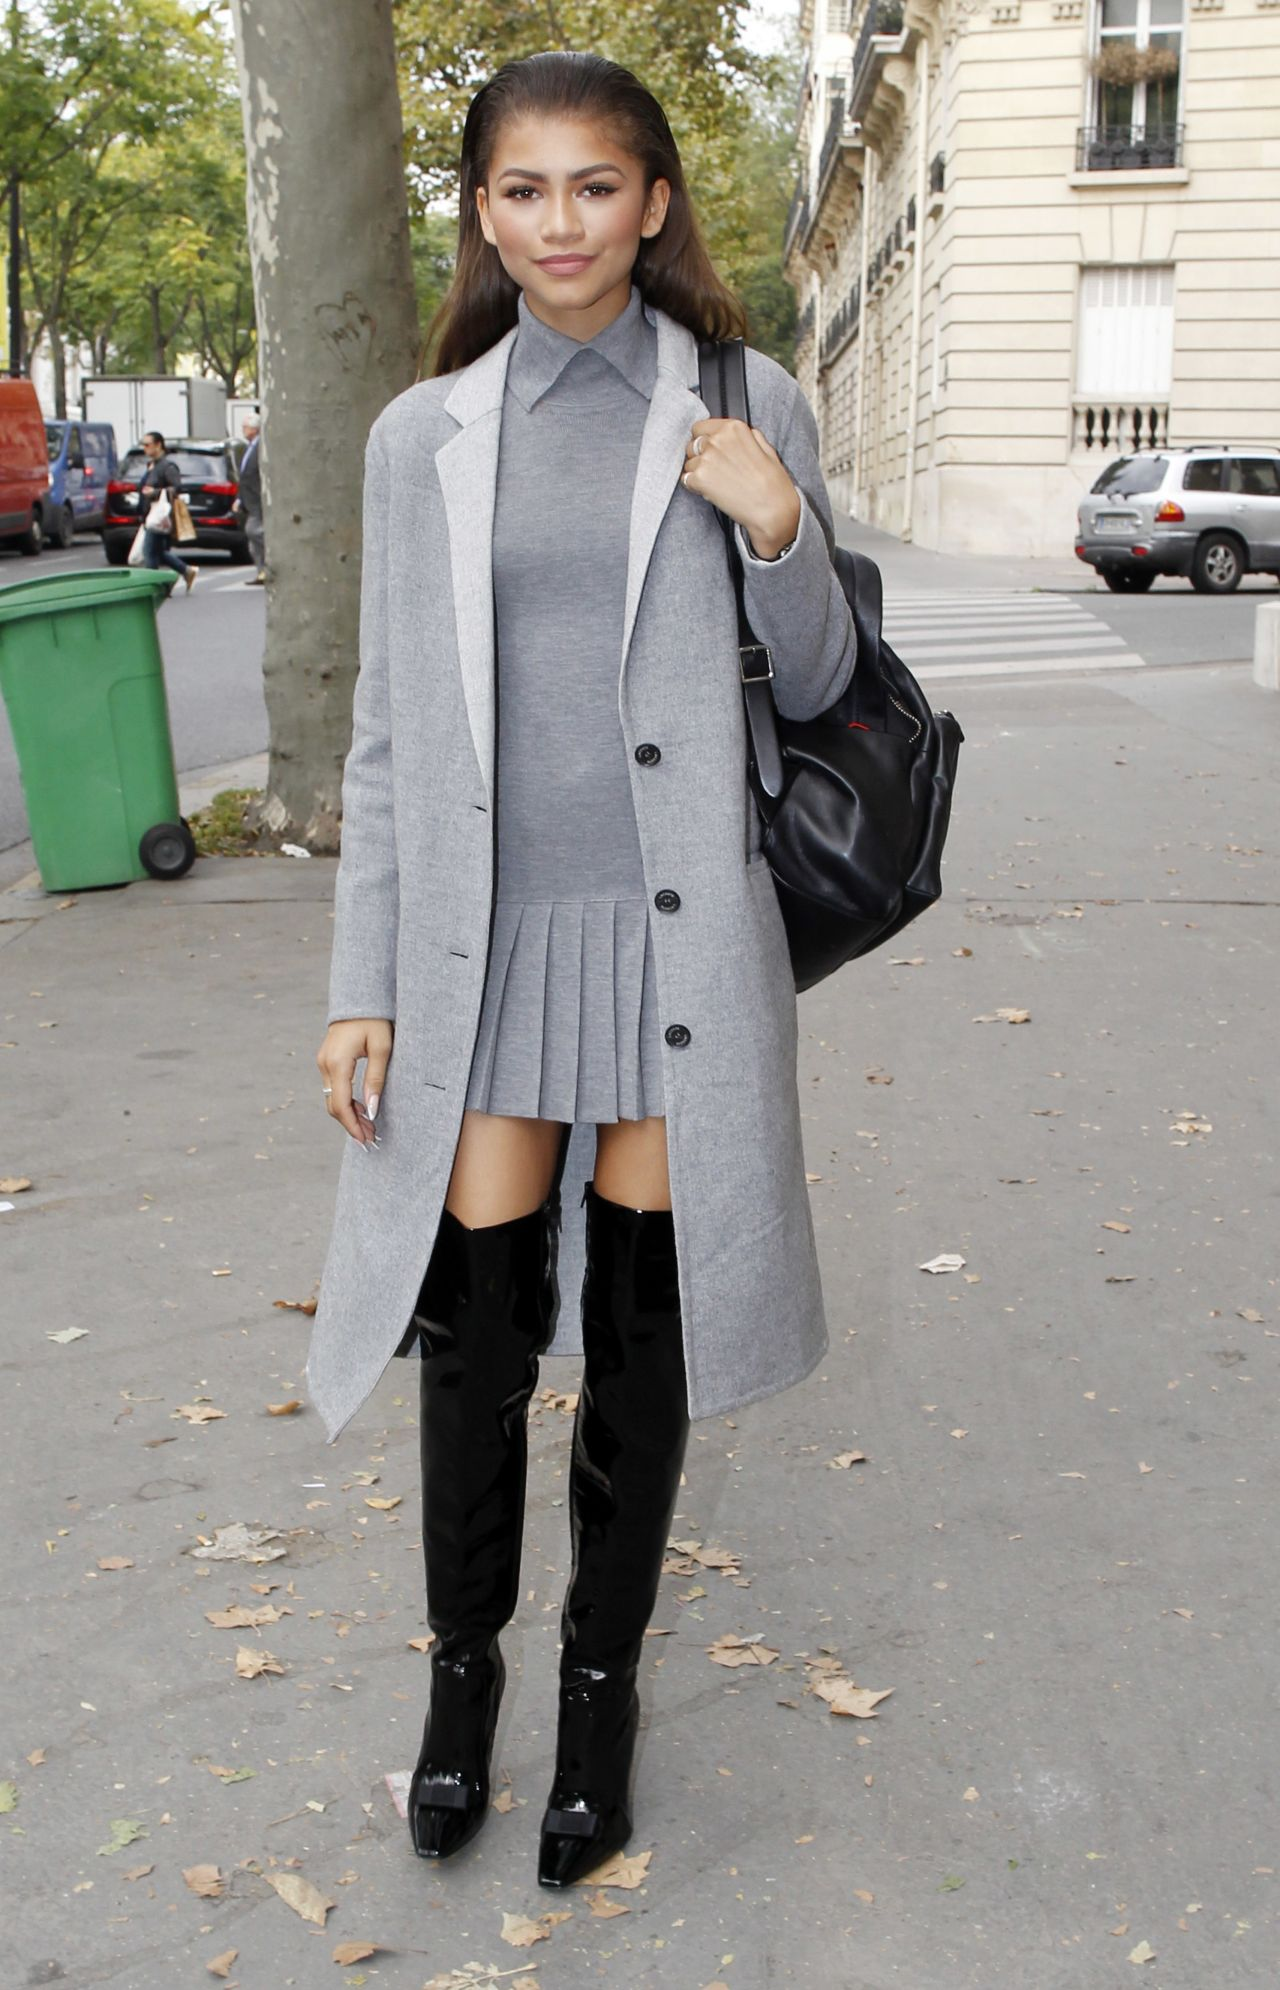 zendaya-street-fashion-out-in-paris-october-2015_5